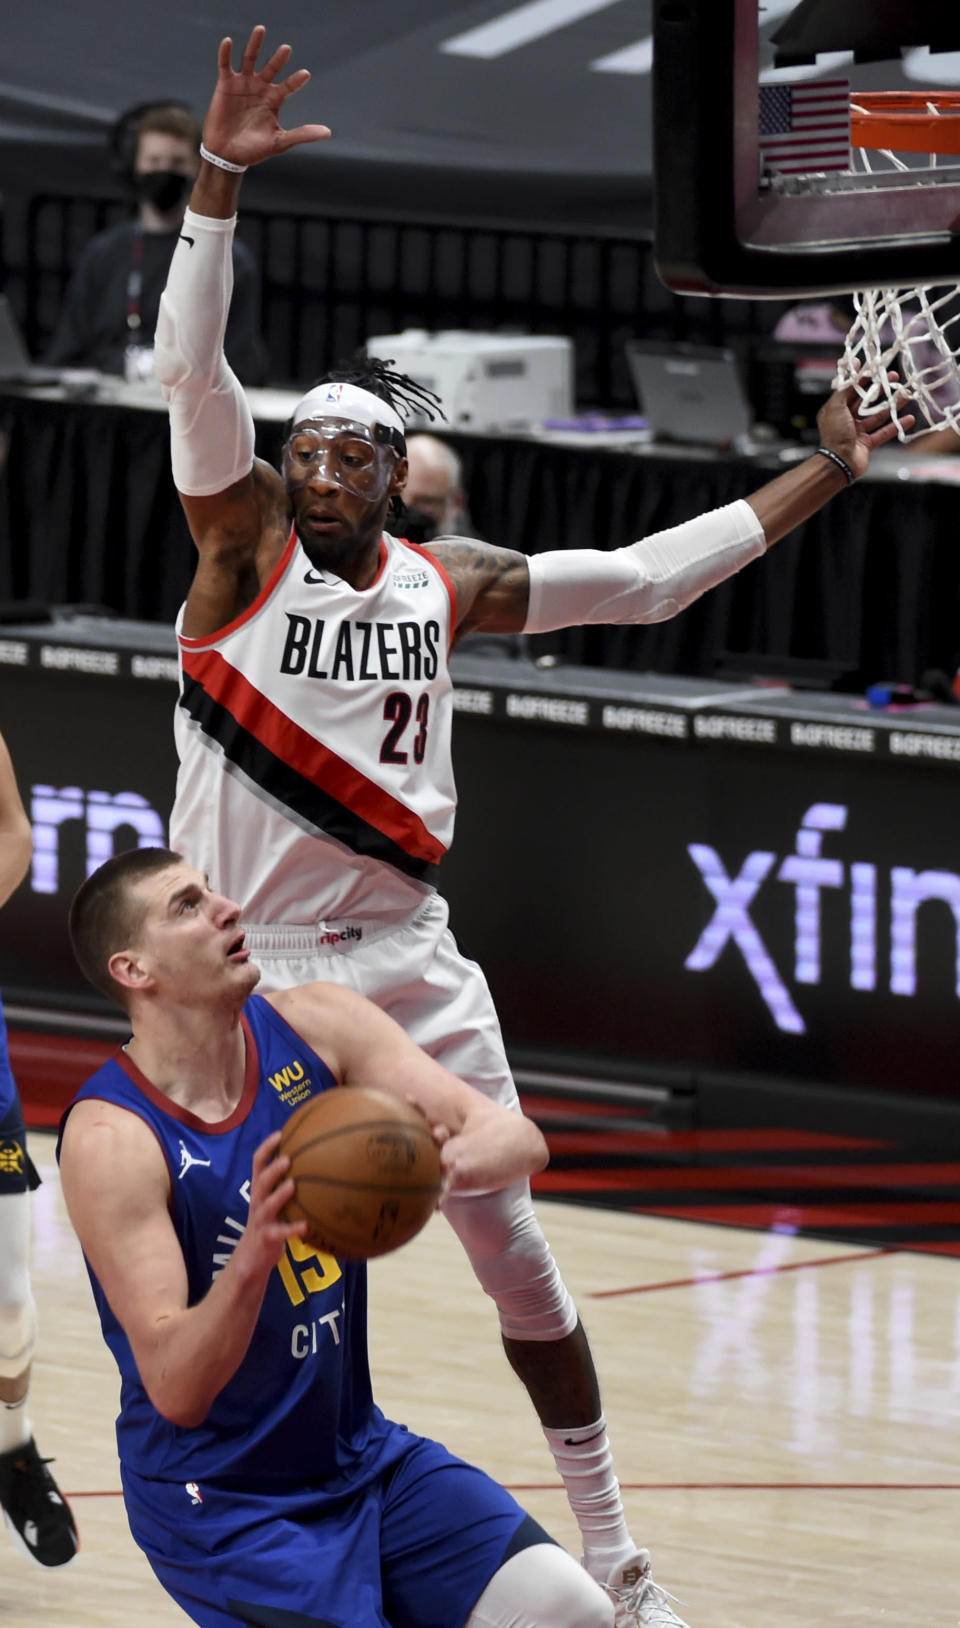 Denver Nuggets center Nikola Jokic is defended by Portland Trail Blazers forward Robert Covington during the first half of an NBA basketball game in Portland, Ore., Wednesday, April 21, 2021. (AP Photo/Steve Dykes)